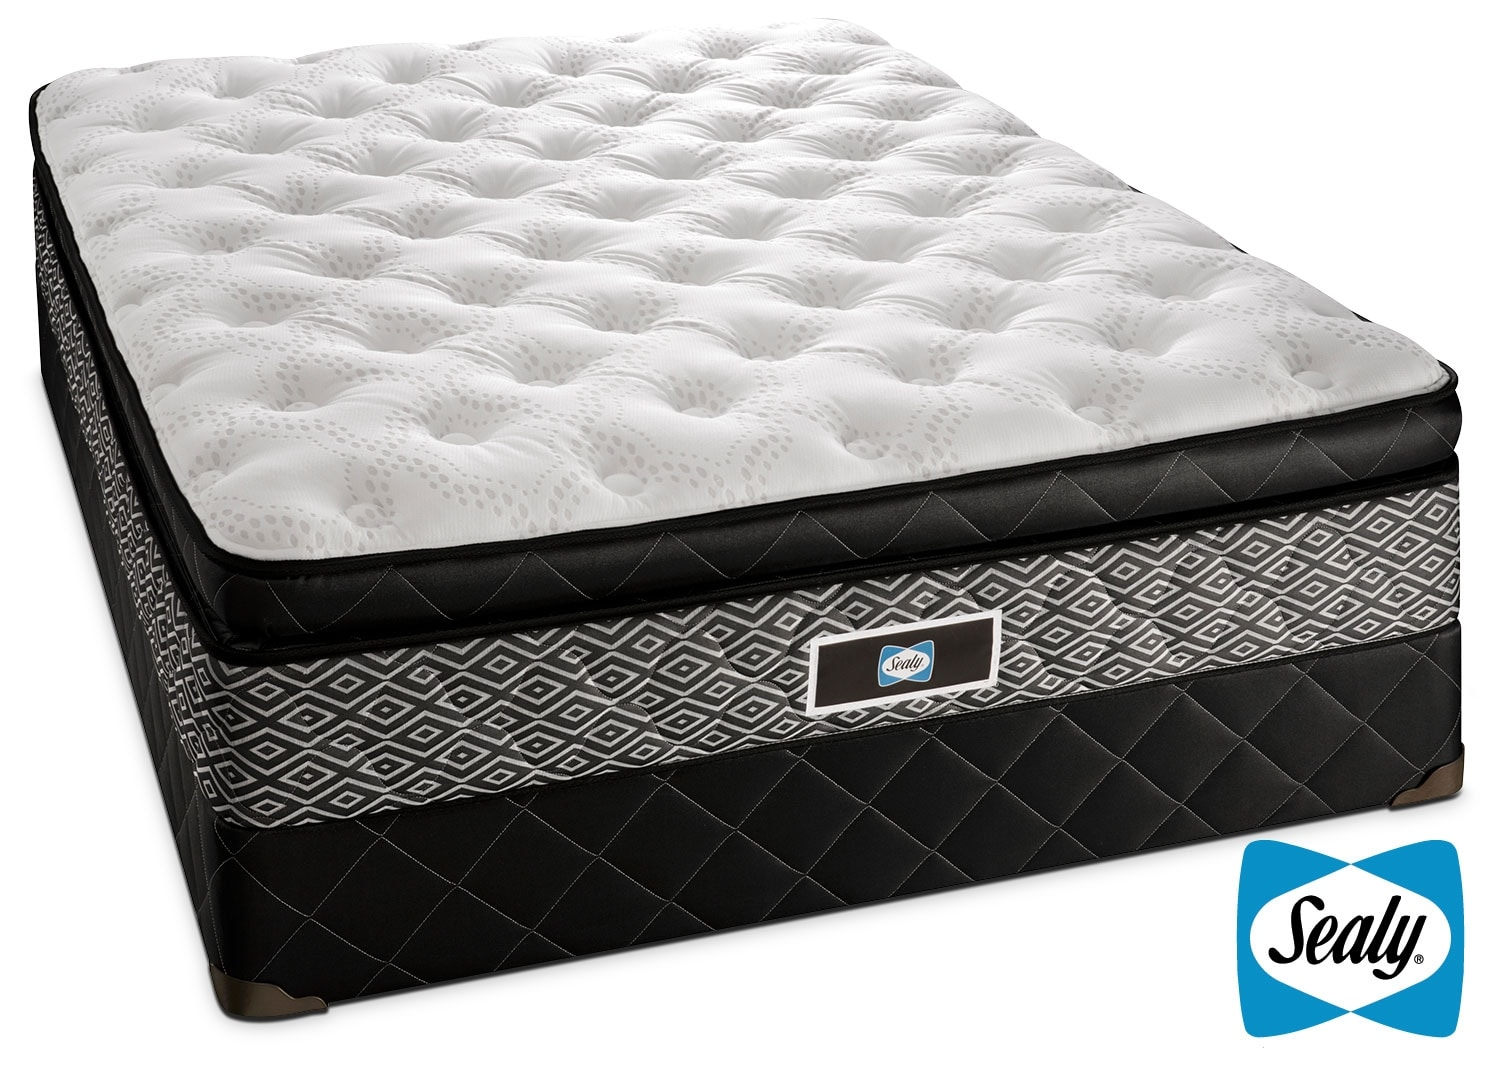 Sealy echo plush queen mattress boxspring set leon 39 s Queen size mattress price